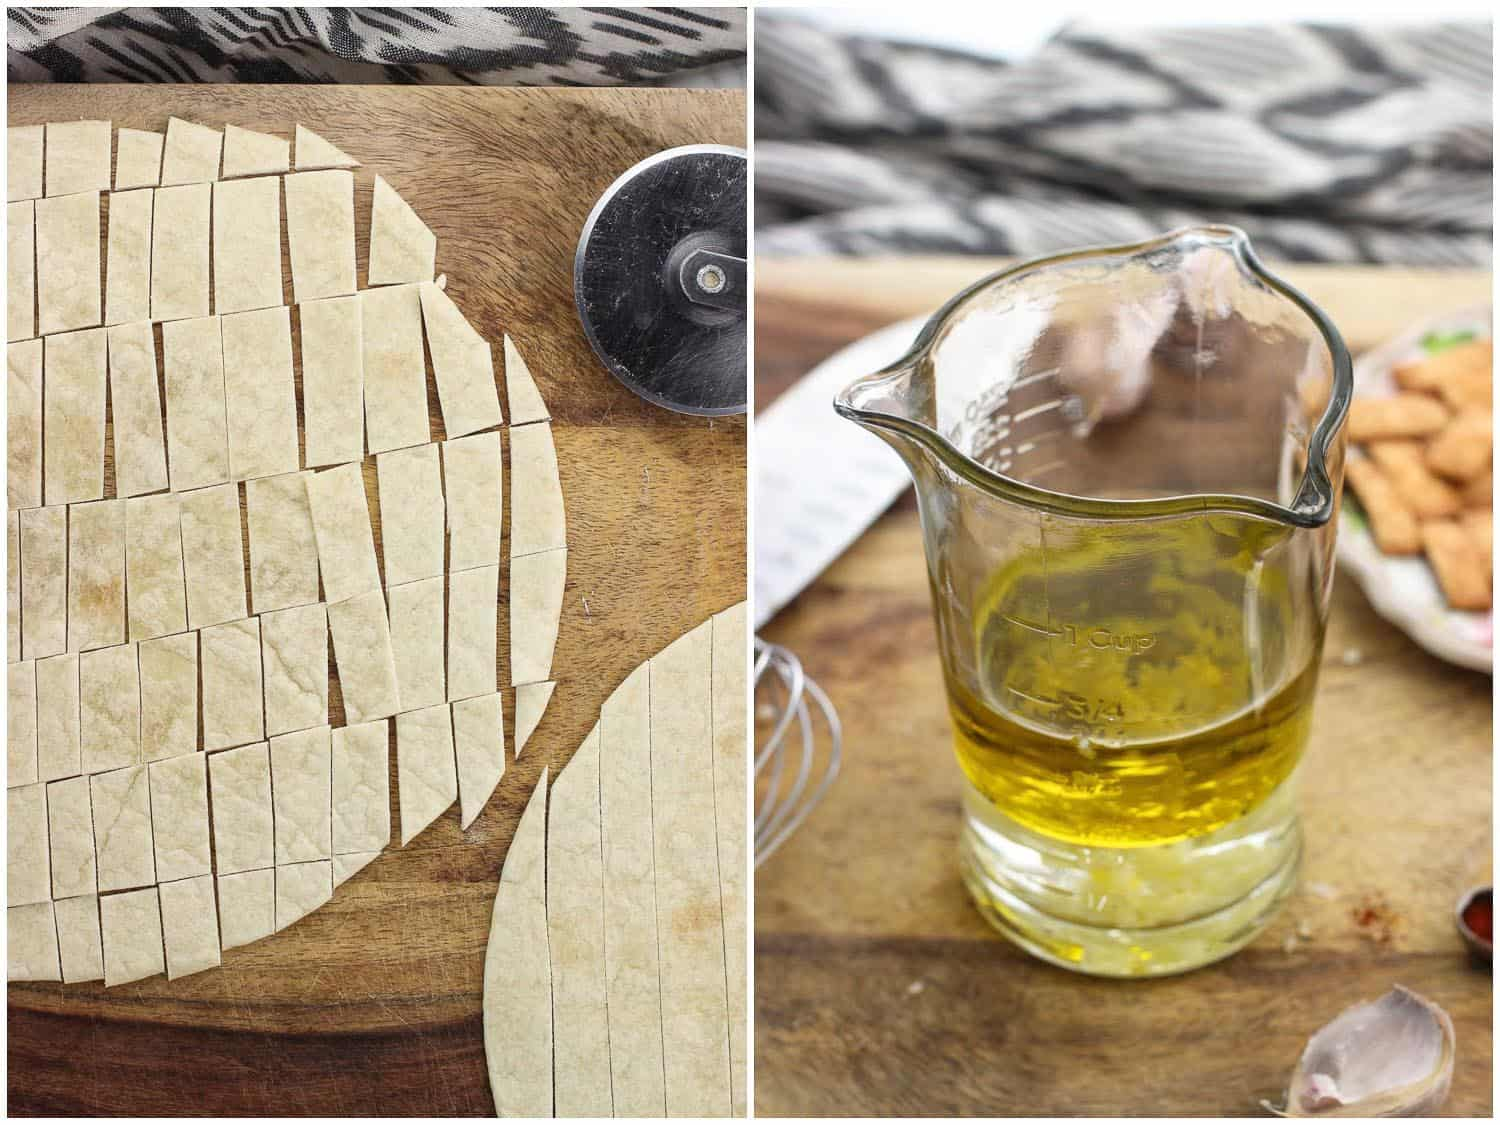 A side-by-side image of a flour tortilla cut into strips on a wooden board (left) and vinaigrette ingredients in a glass measuring cup (right)